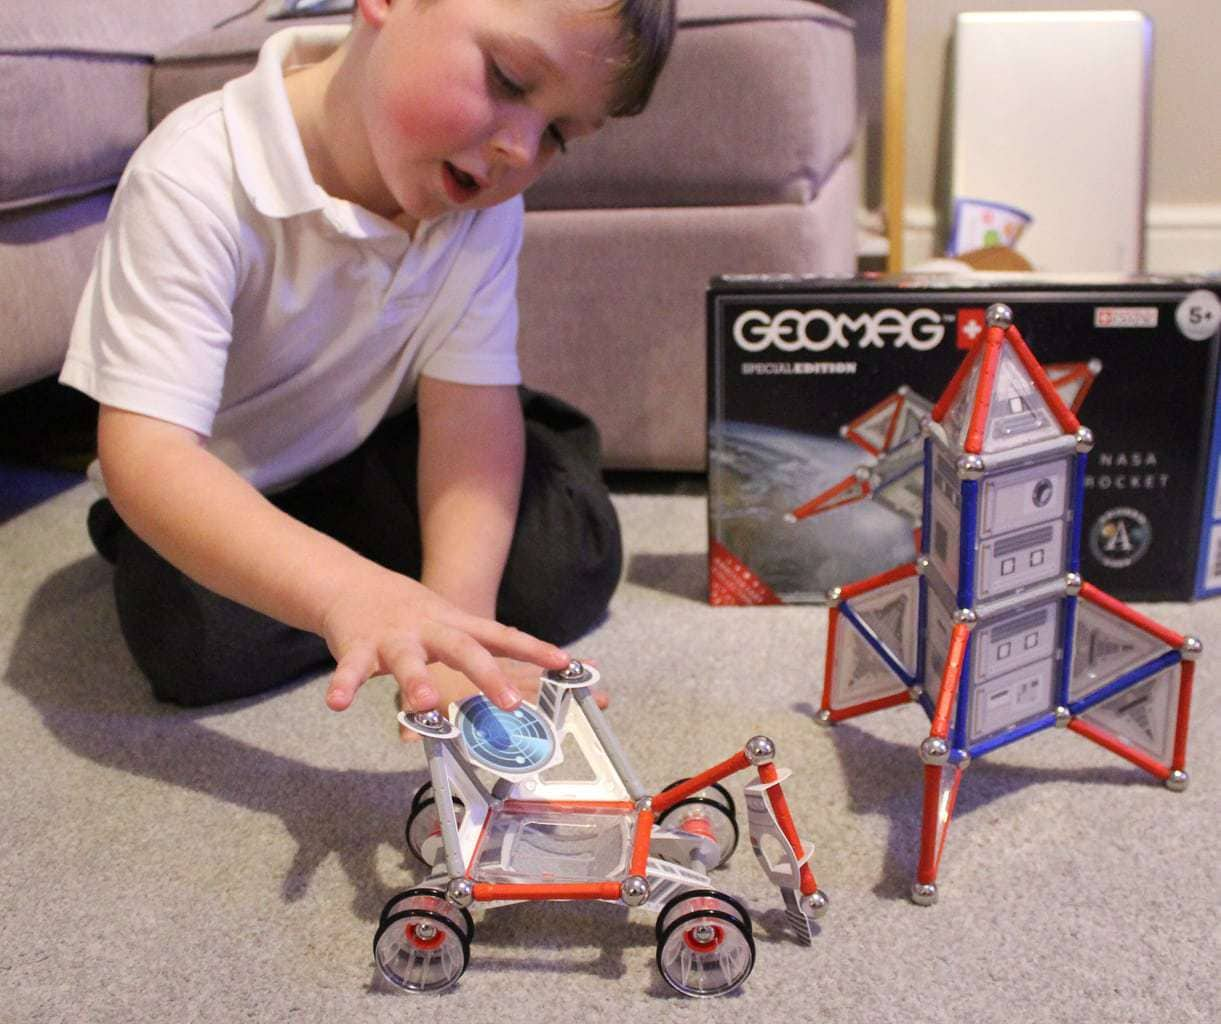 Geomag rocket and rover